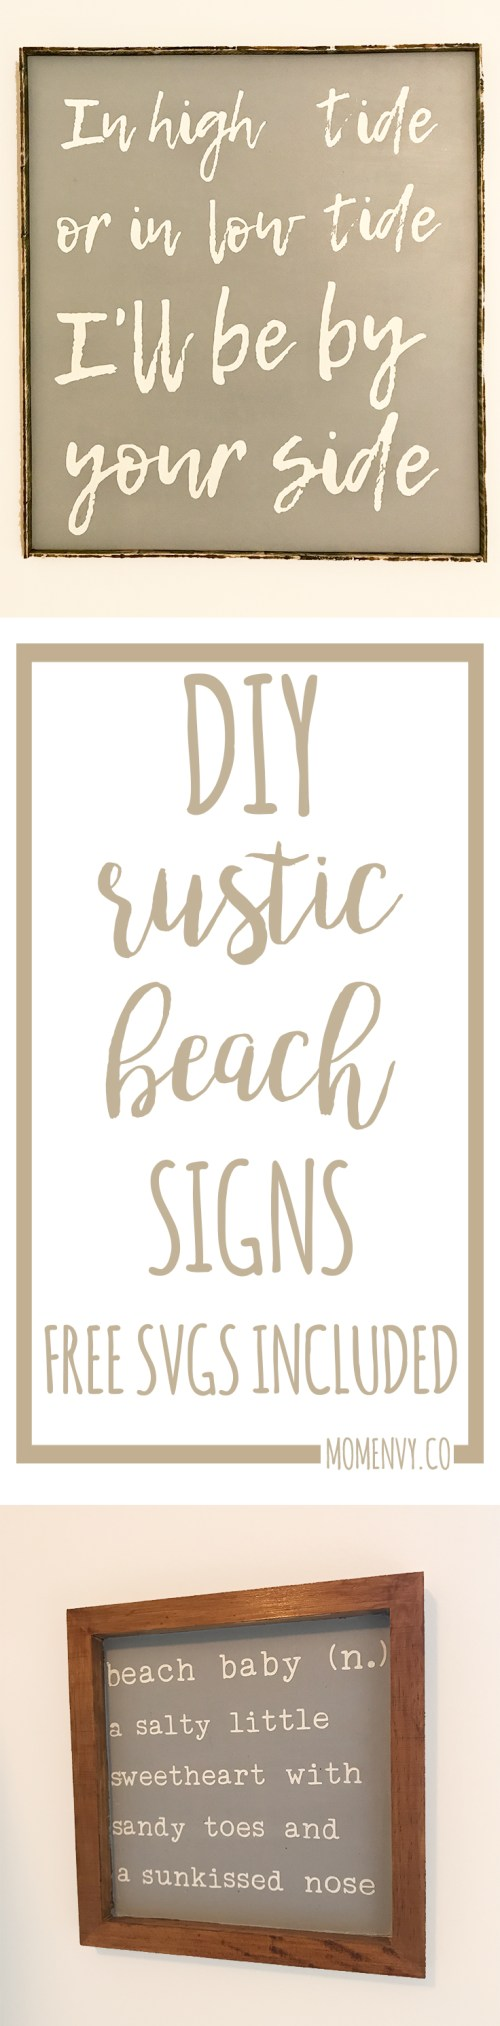 DIY Beach Signs - Free SVG Files Included - Beach Baby Shower